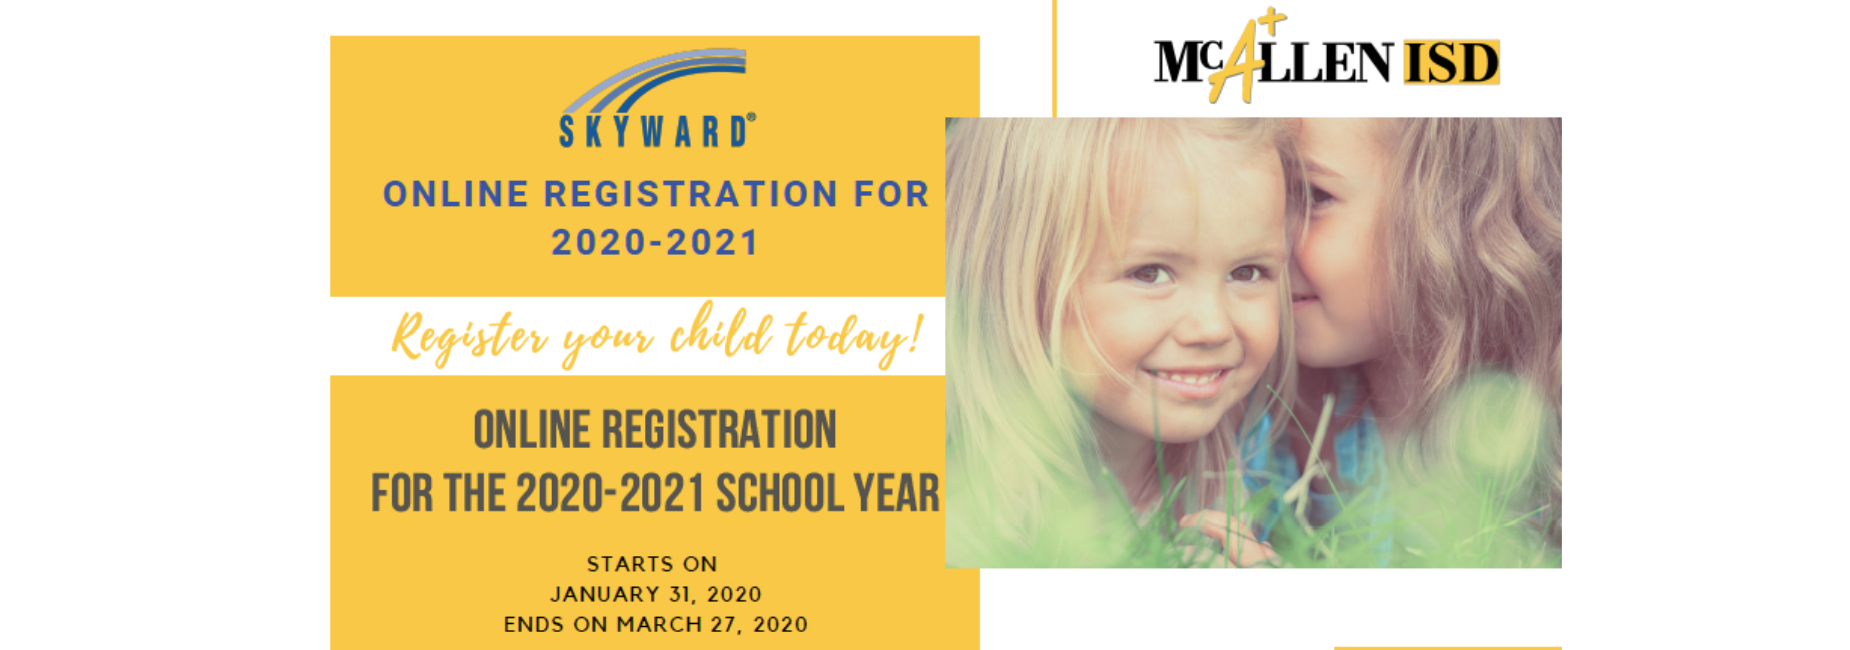 Online Registration is open through March 27, 2020.